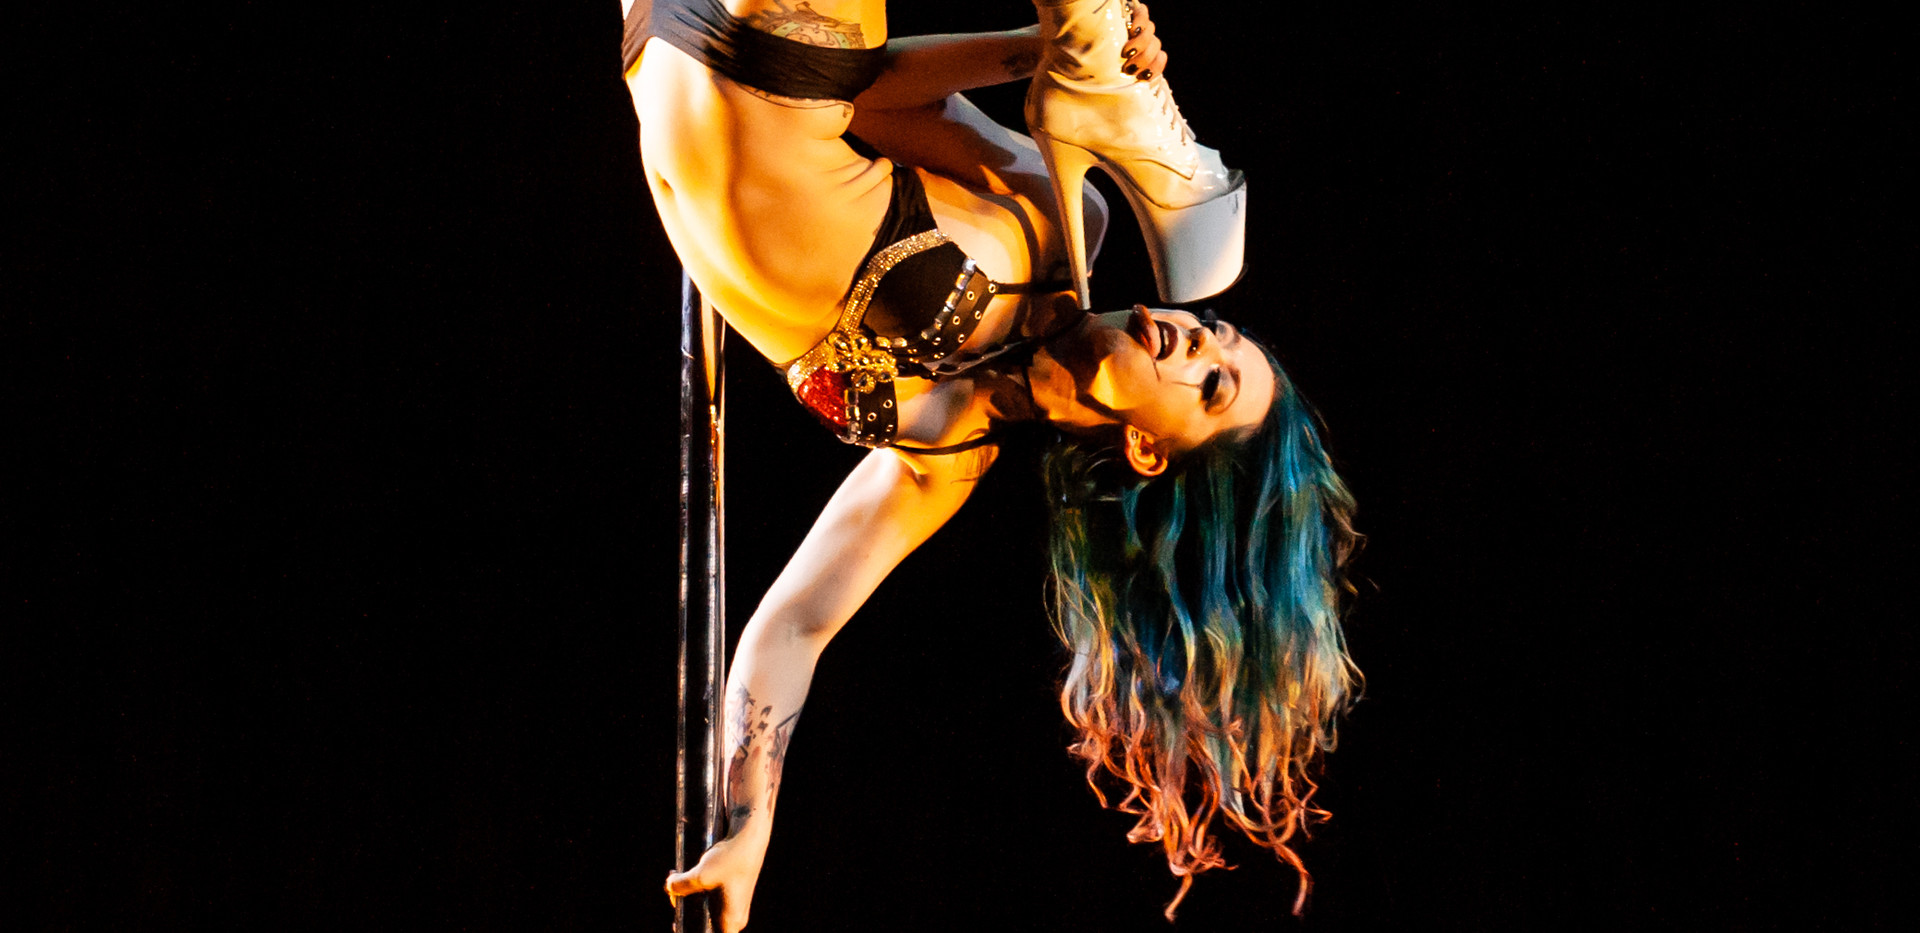 Leah Franklin - 2018 Professional Pole Classique Winner